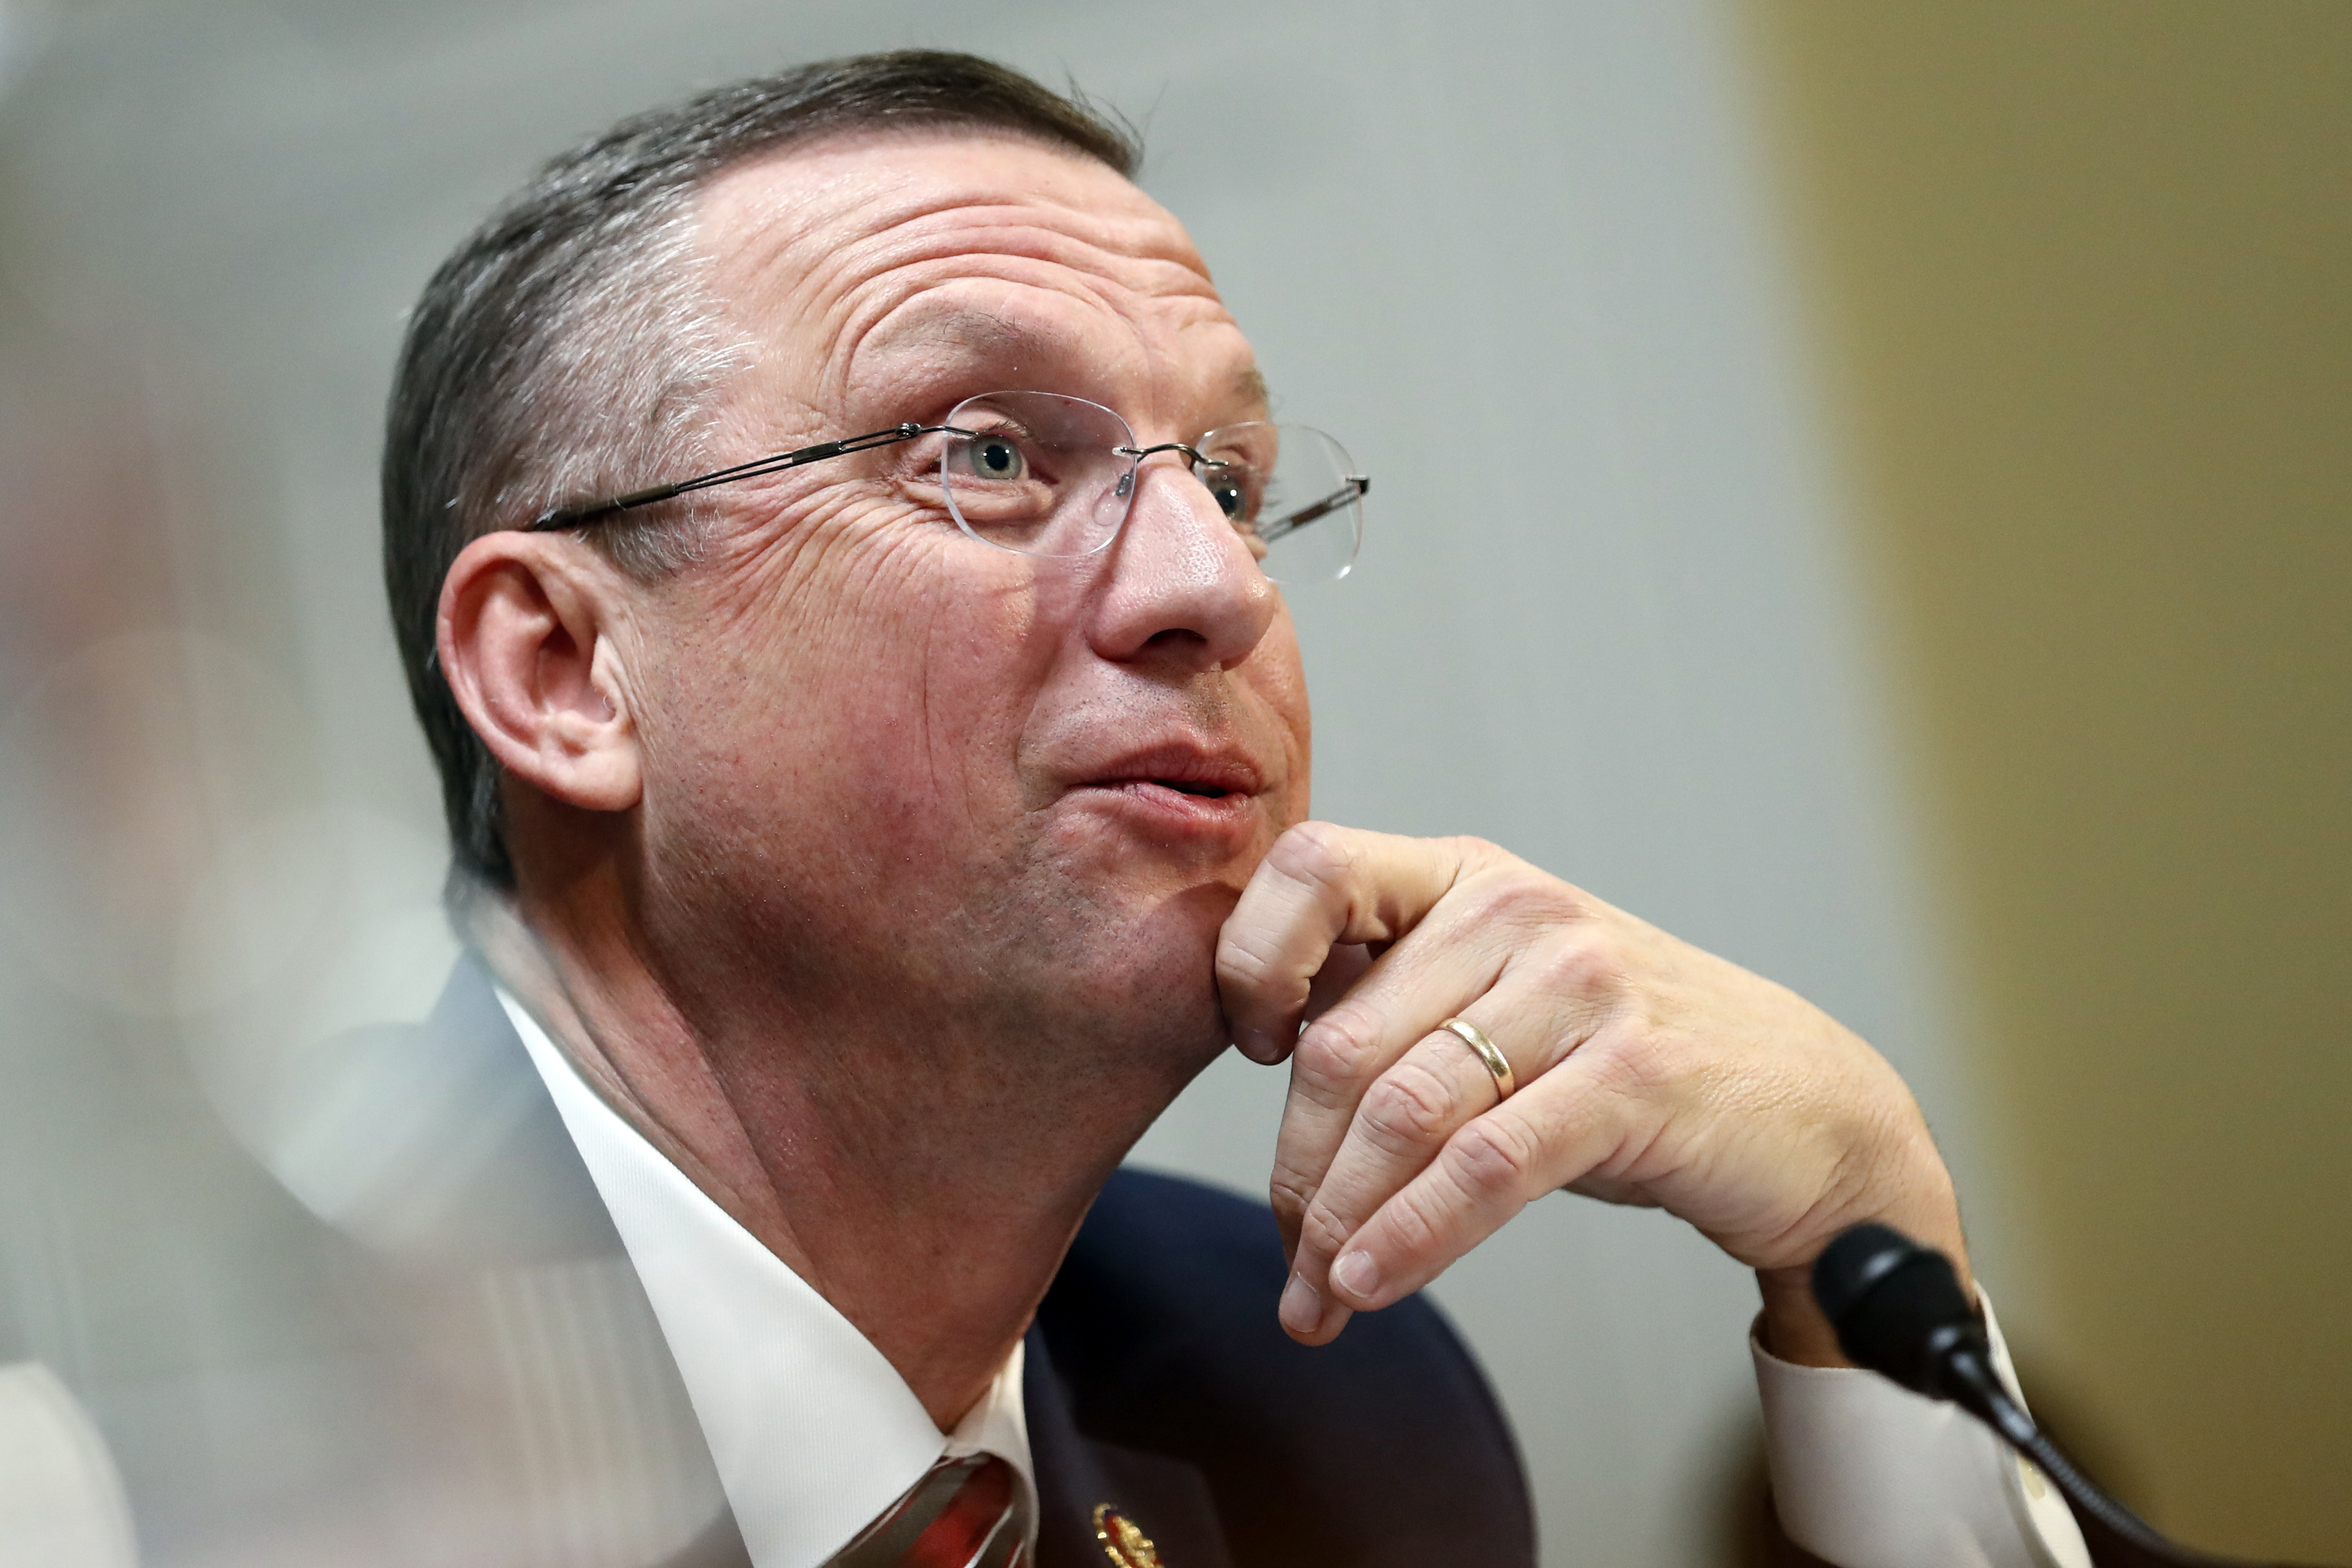 House Judiciary Committee ranking member Rep. Doug Collins (R-GA) speaks during a hearing on the impeachment against President Donald Trump on Dec. 17, 2019 in Washington, D.C.